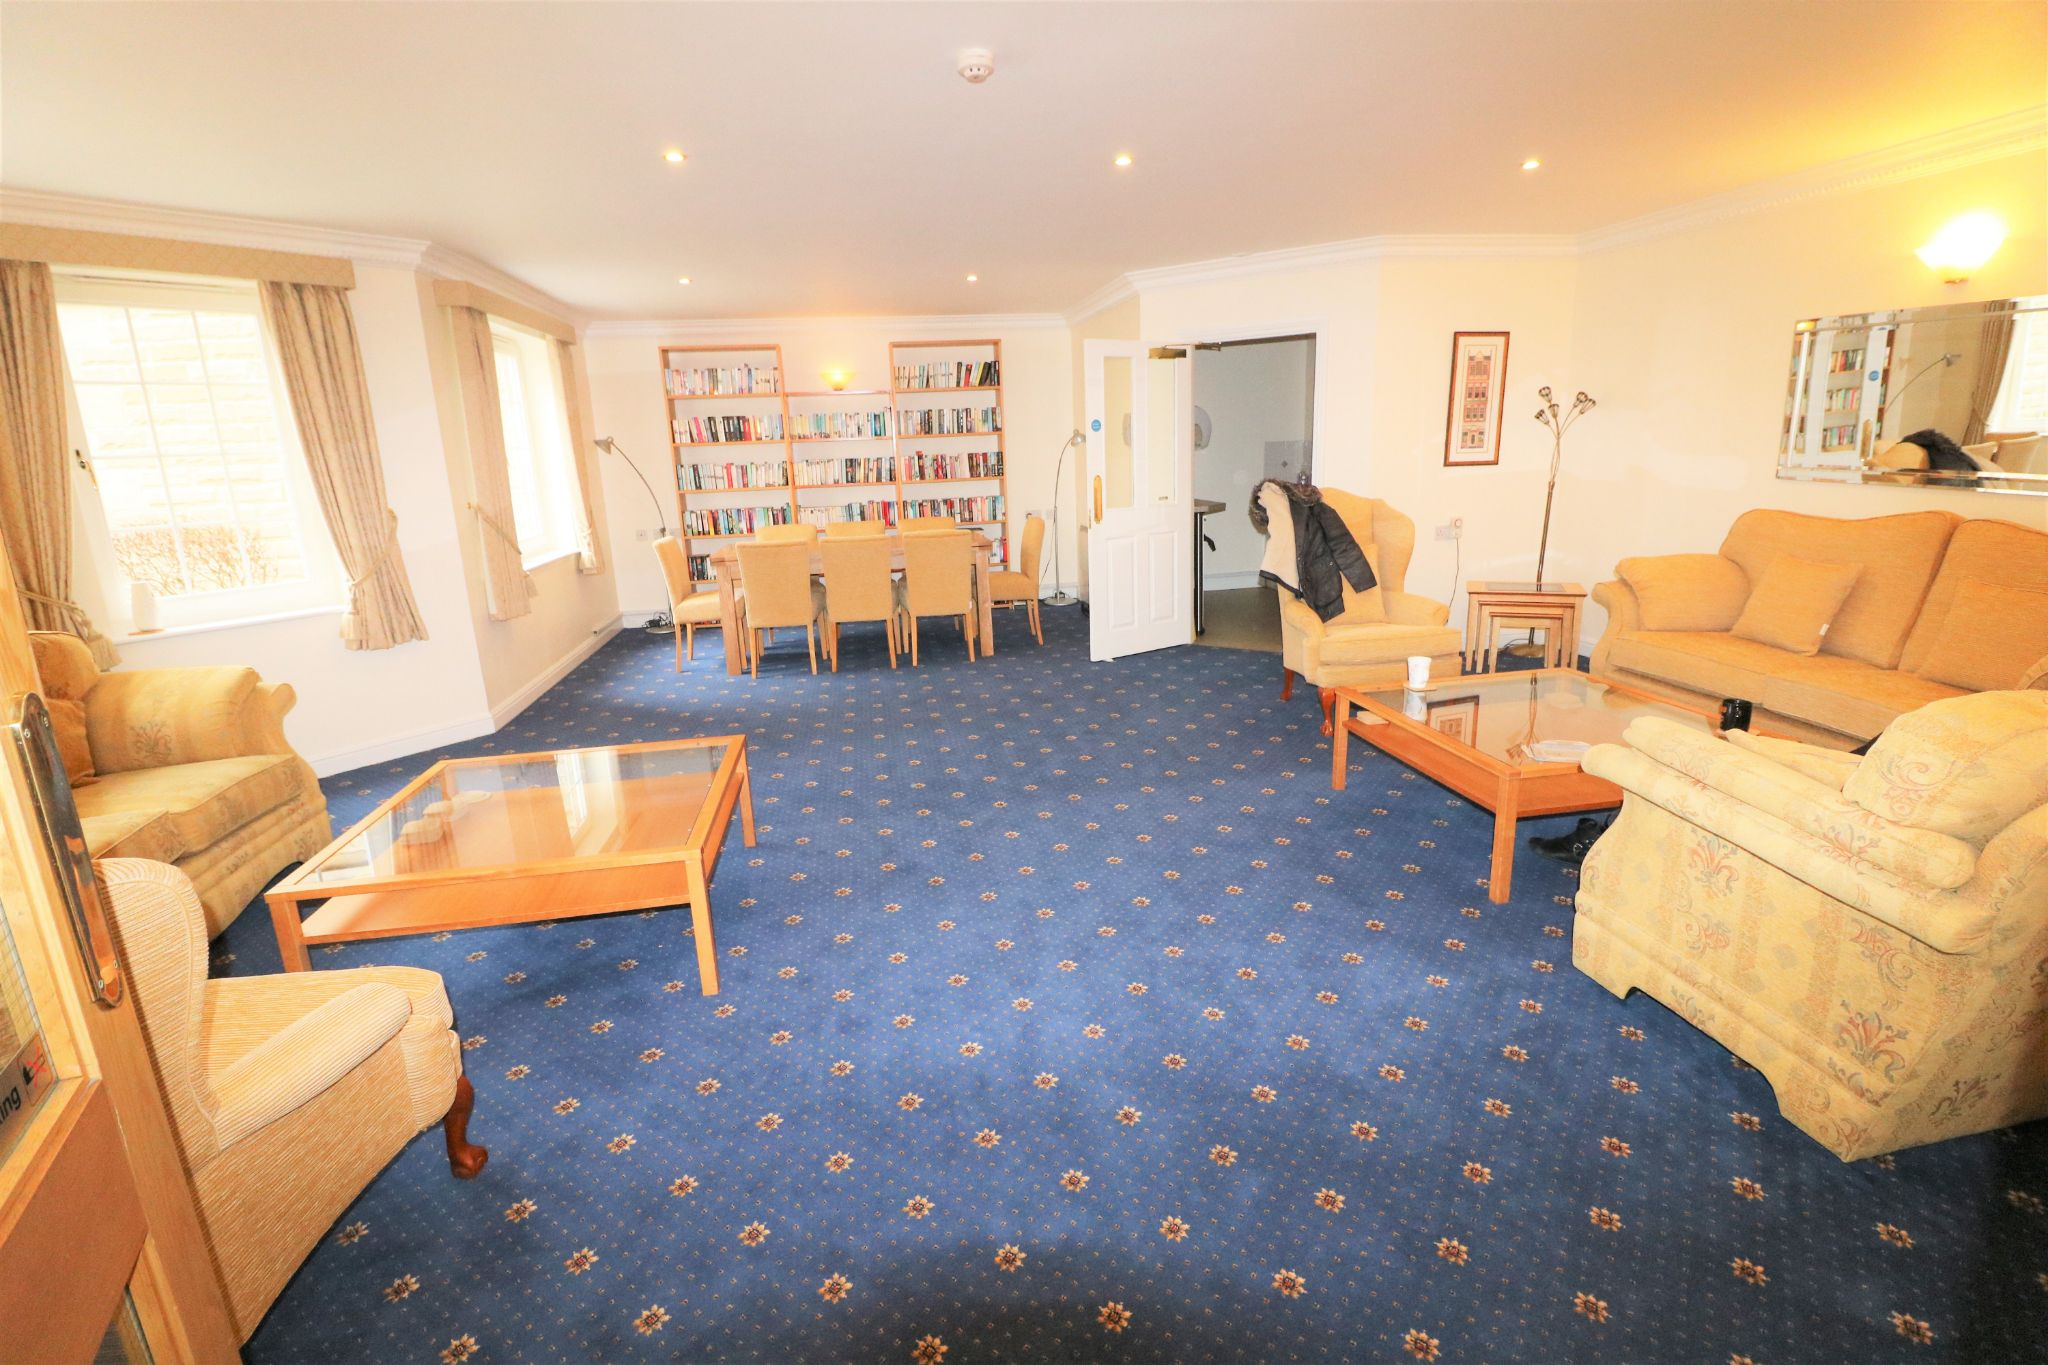 1 Bedroom Penthouse Flat/apartment For Sale - Photograph 13